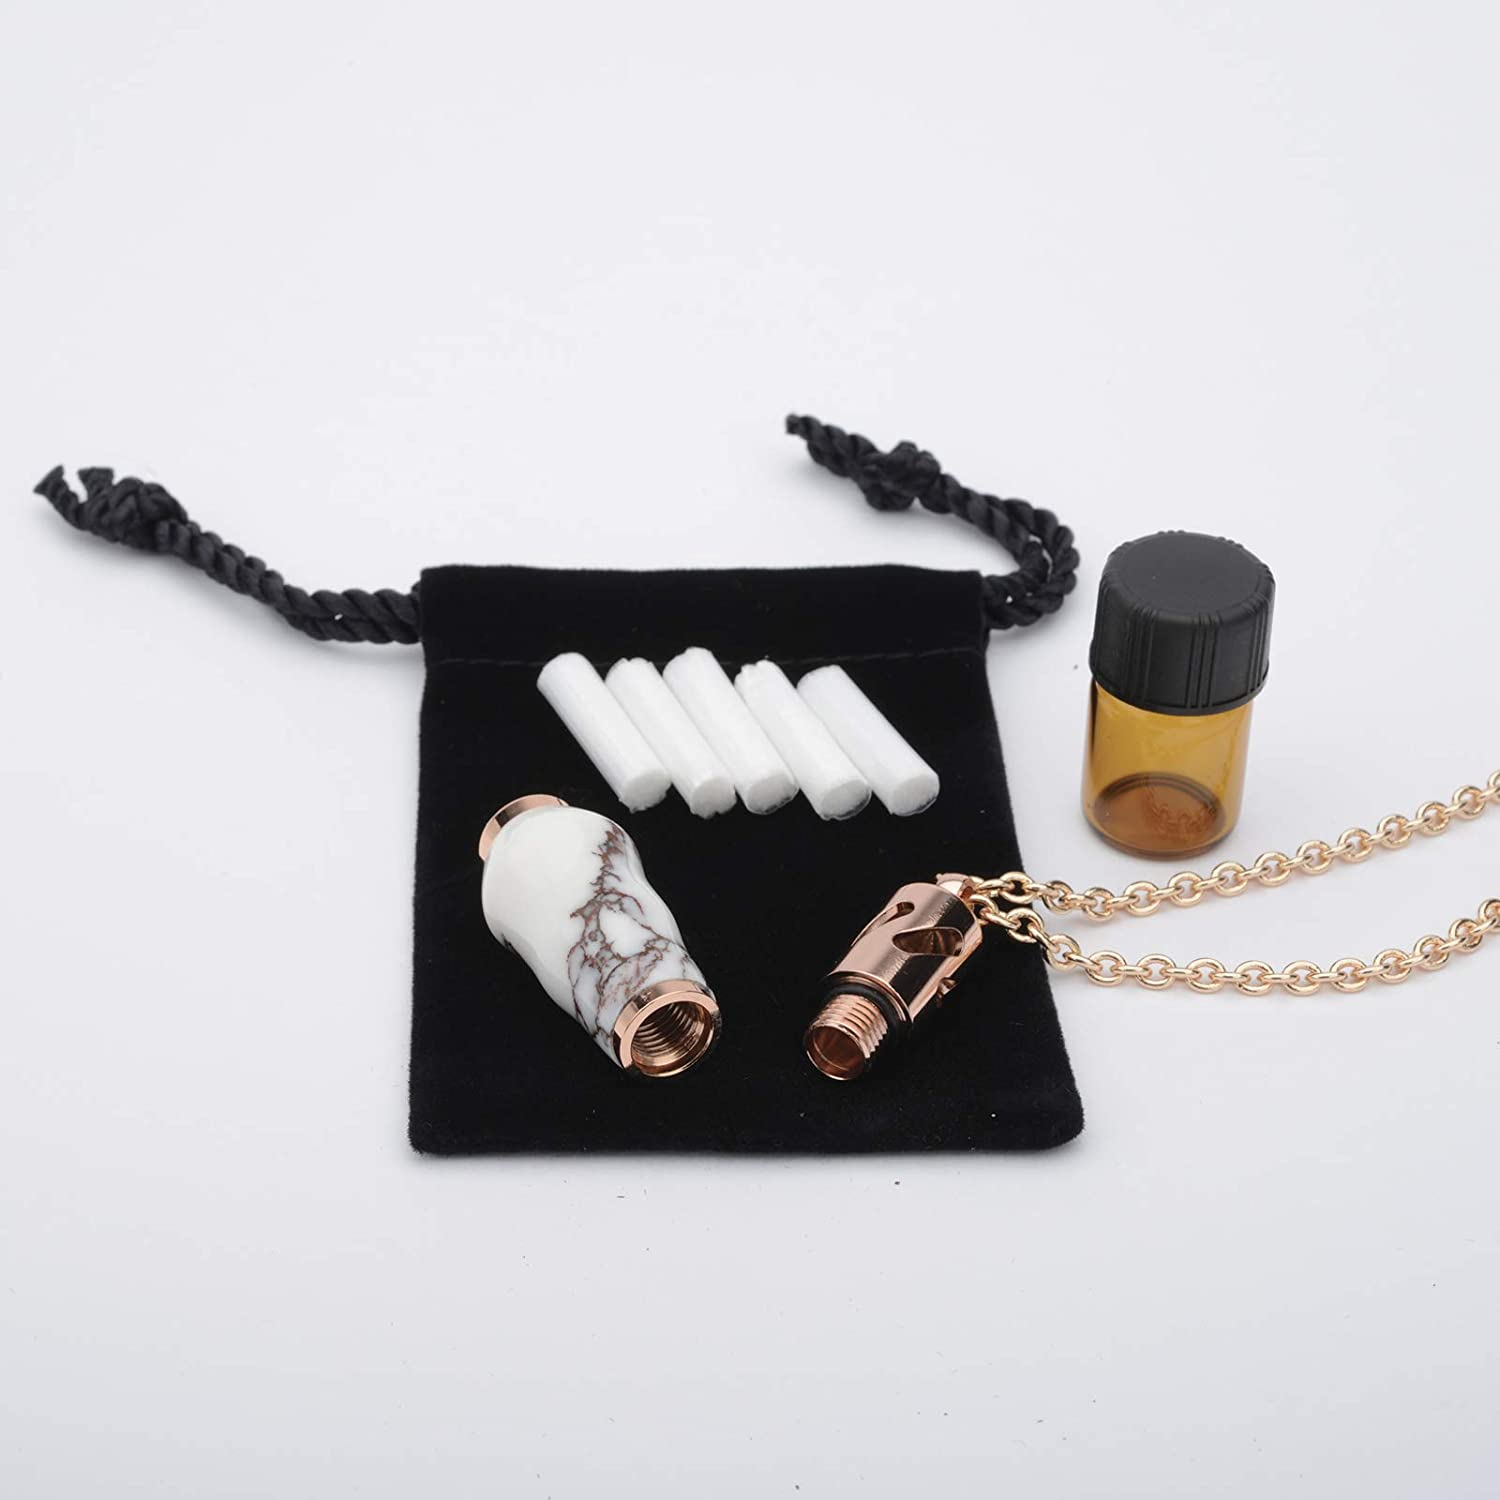 1, 24kt Gold Penn State Industries PKATHN24 Aromatherapy Necklace Woodturning Project Kit